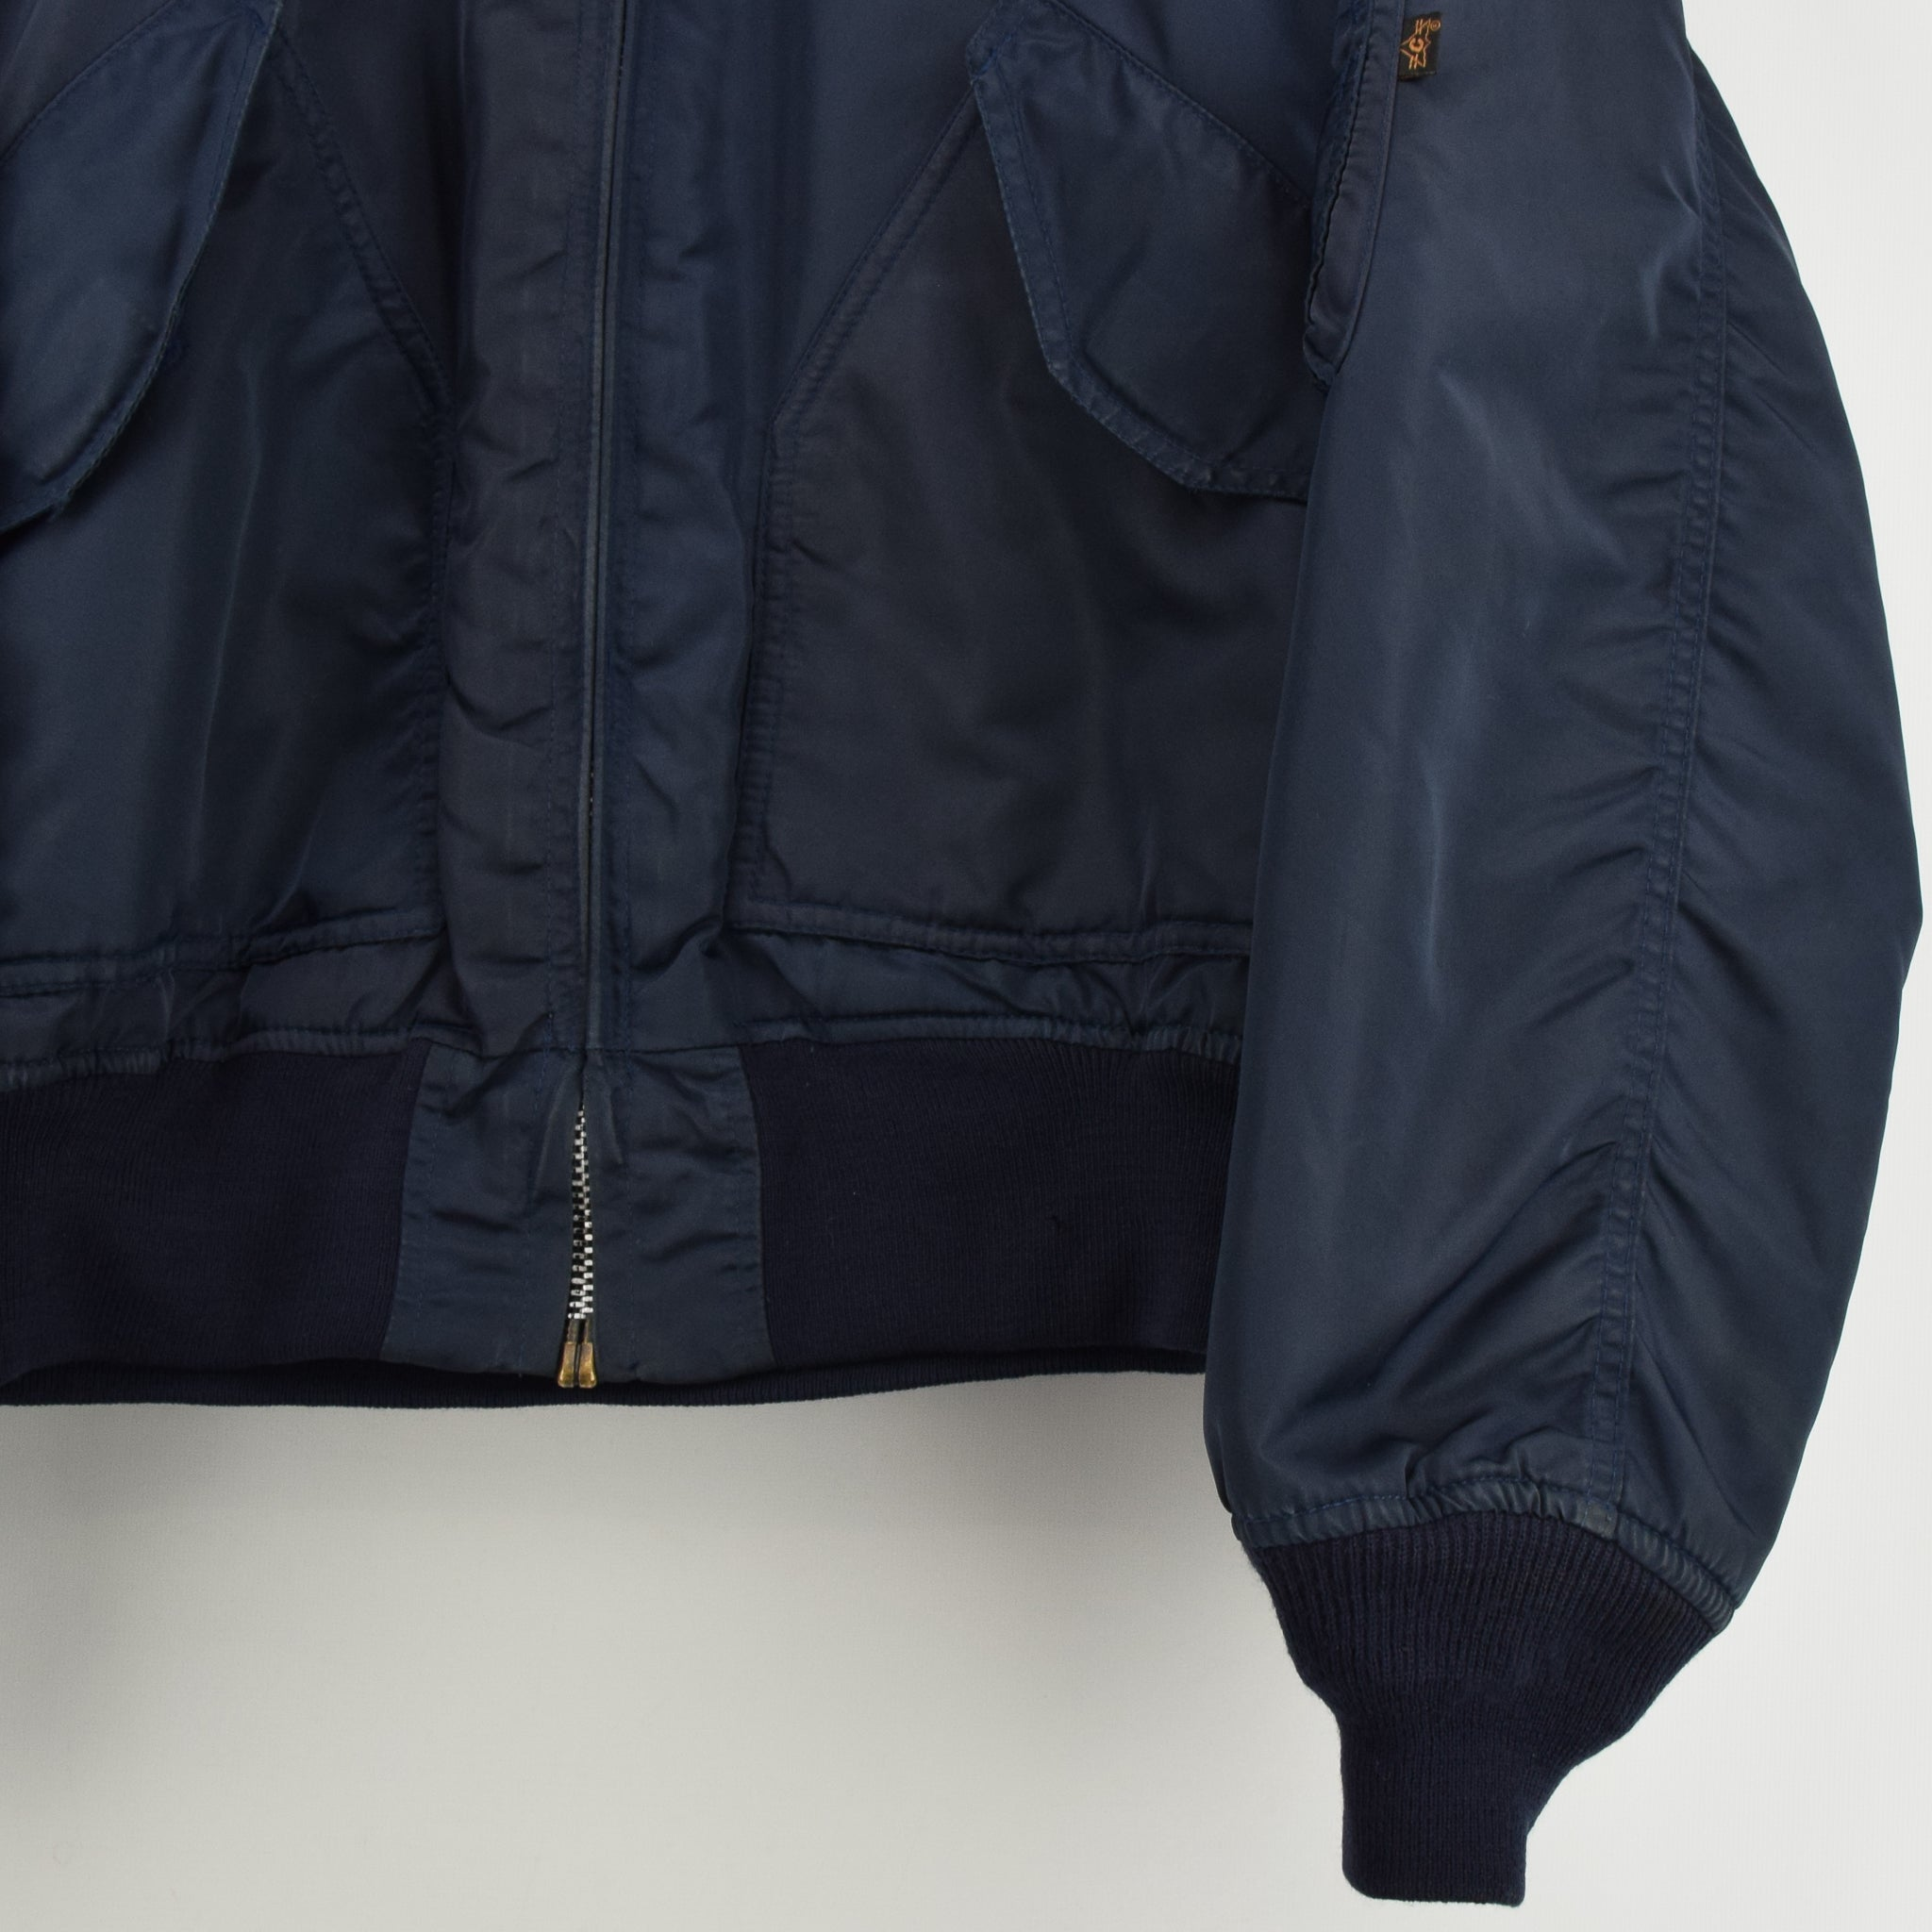 87cd31780305 ... Vintage Concord Industries CWU-45 Flyer s Man Flight MA-2 Bomber Jacket  L front ...